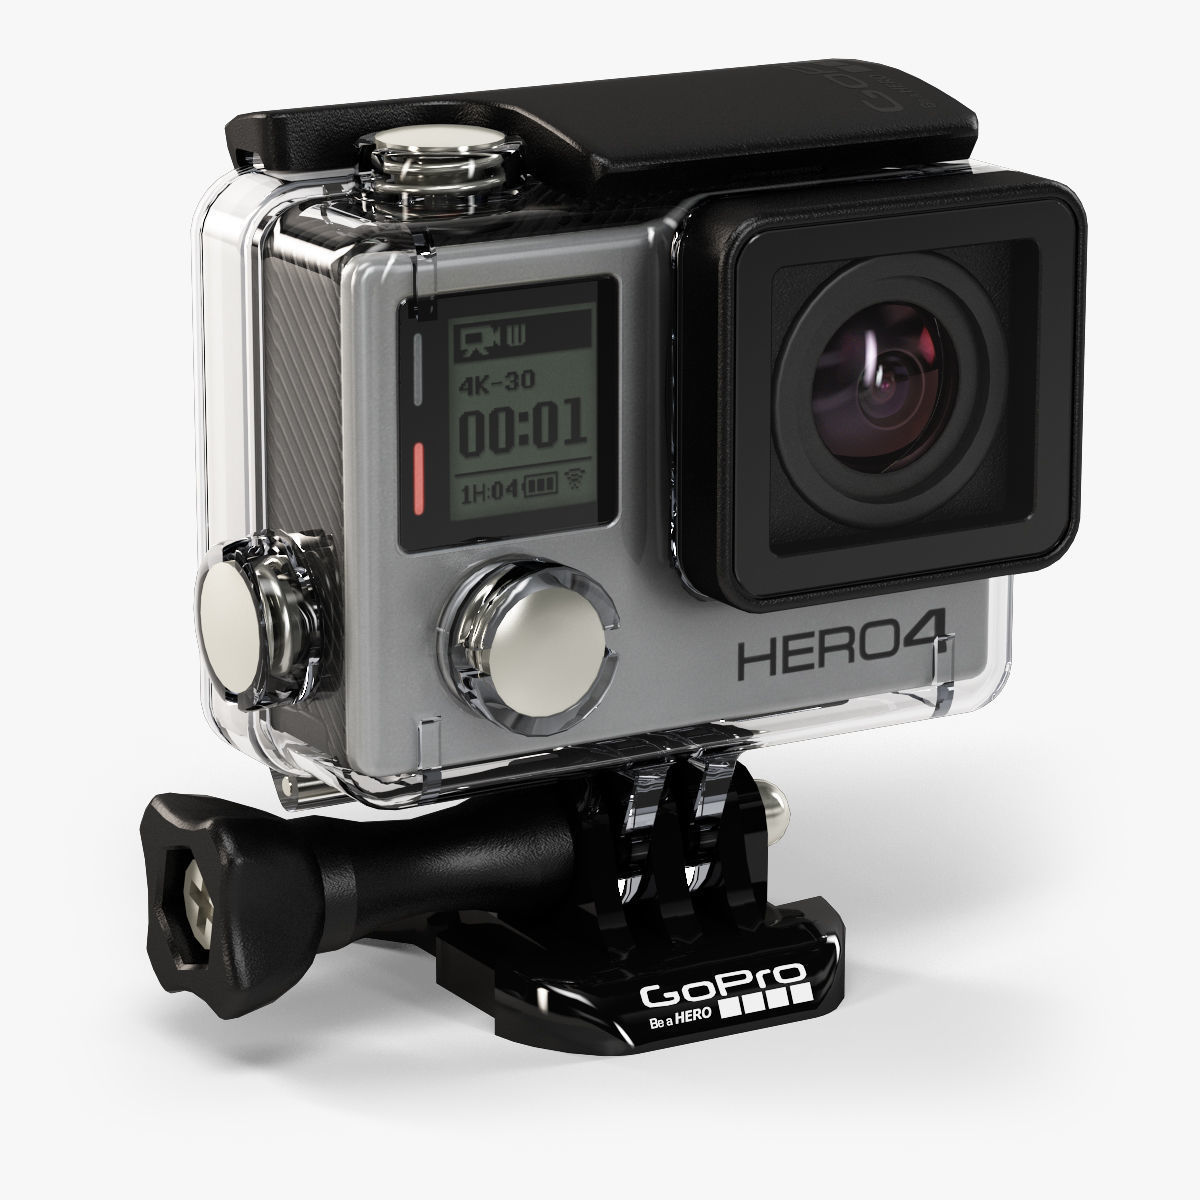 GoPro HERO4 Black Edition action camera with Waterproof Housing